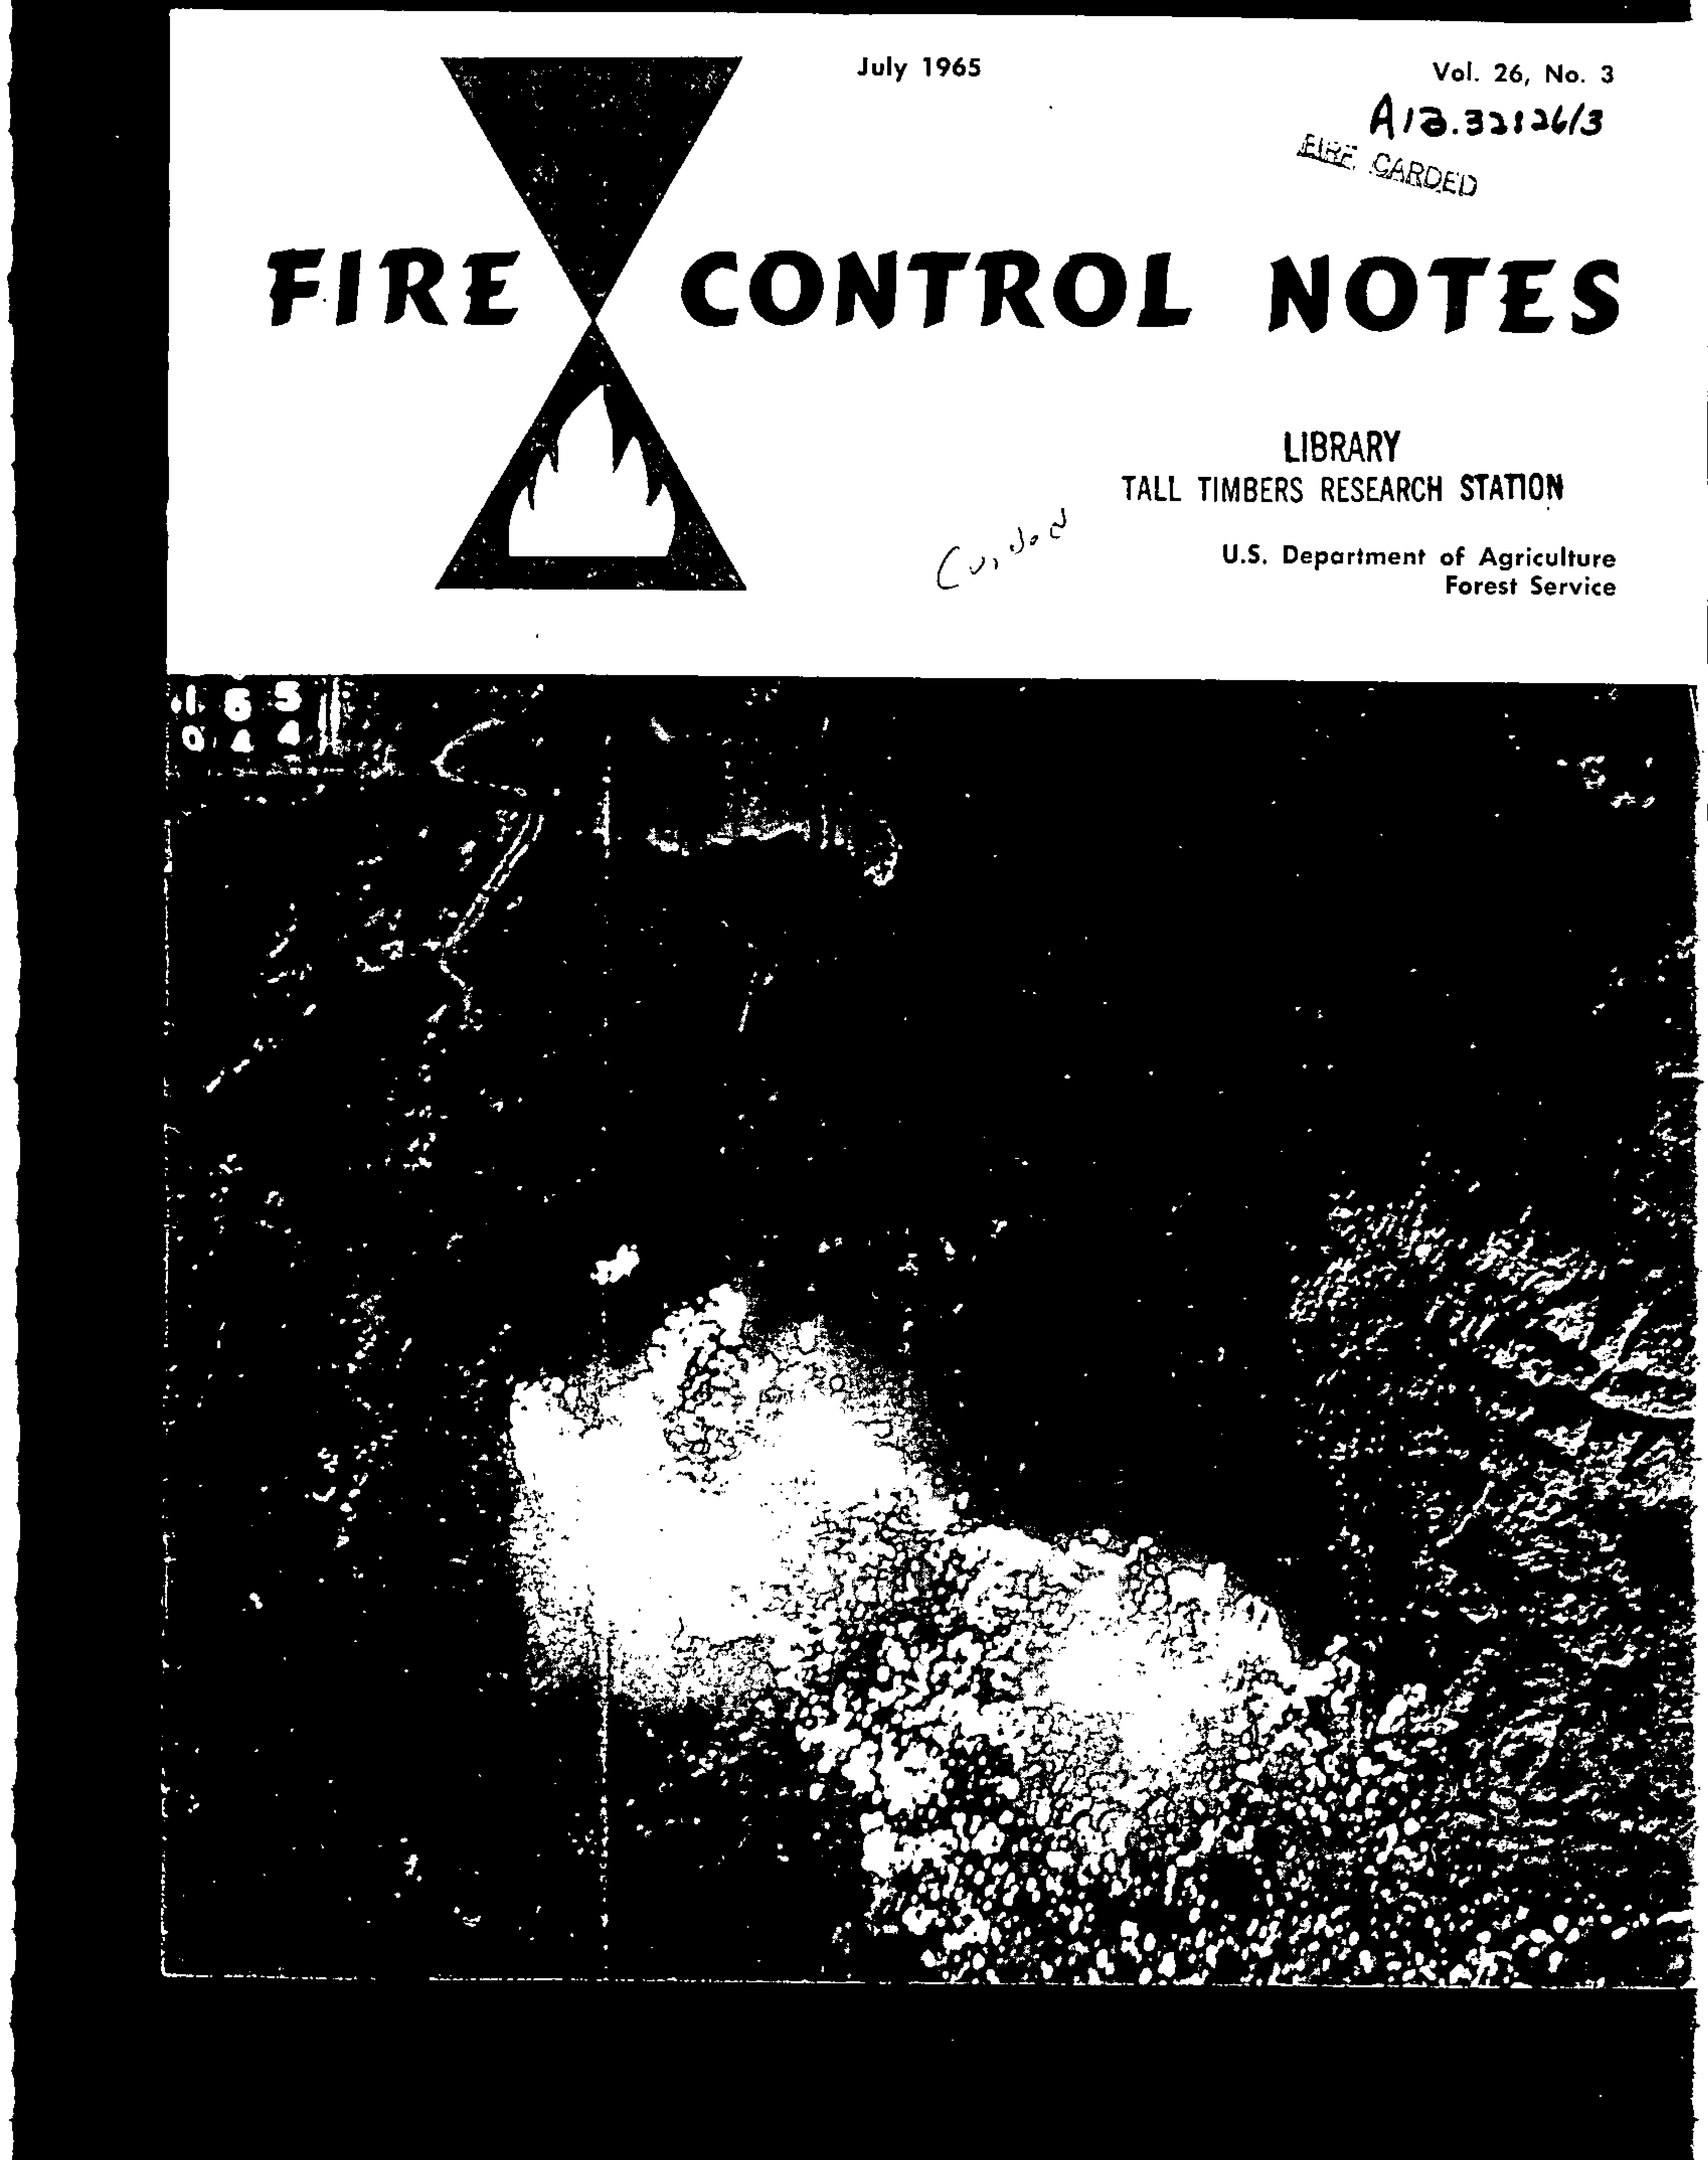 Cover of Fire Management Today Volume 26, Issue 03